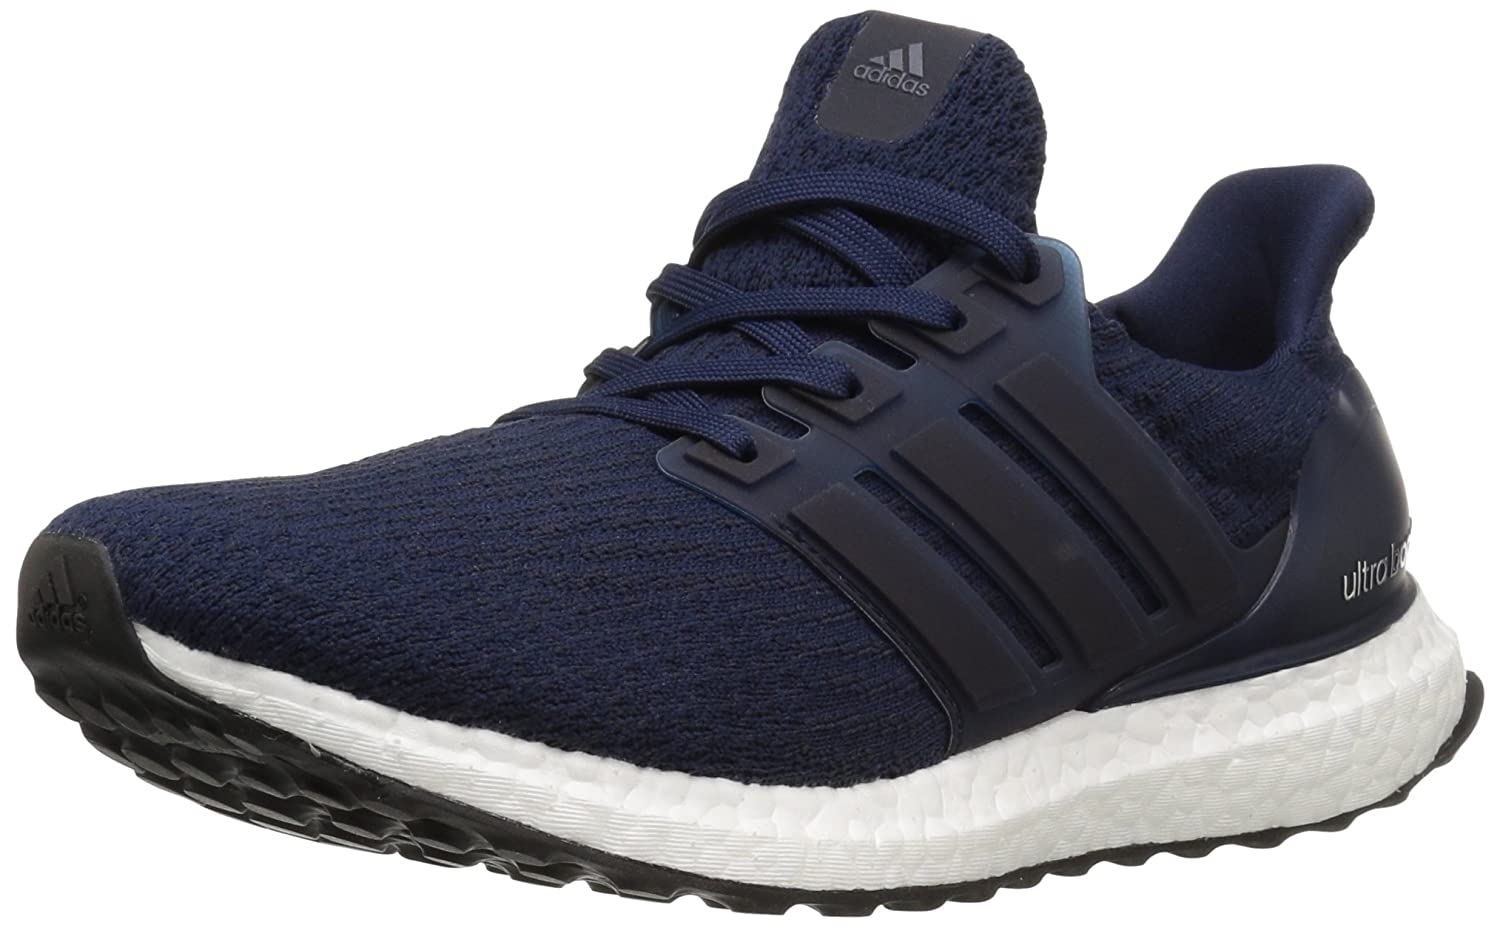 adidas Performance Men's Ultra Boost M Running Shoe B01H6447VK 8 D(M) US|Collegiate Navy/Collegiate Navy/Dark Navy